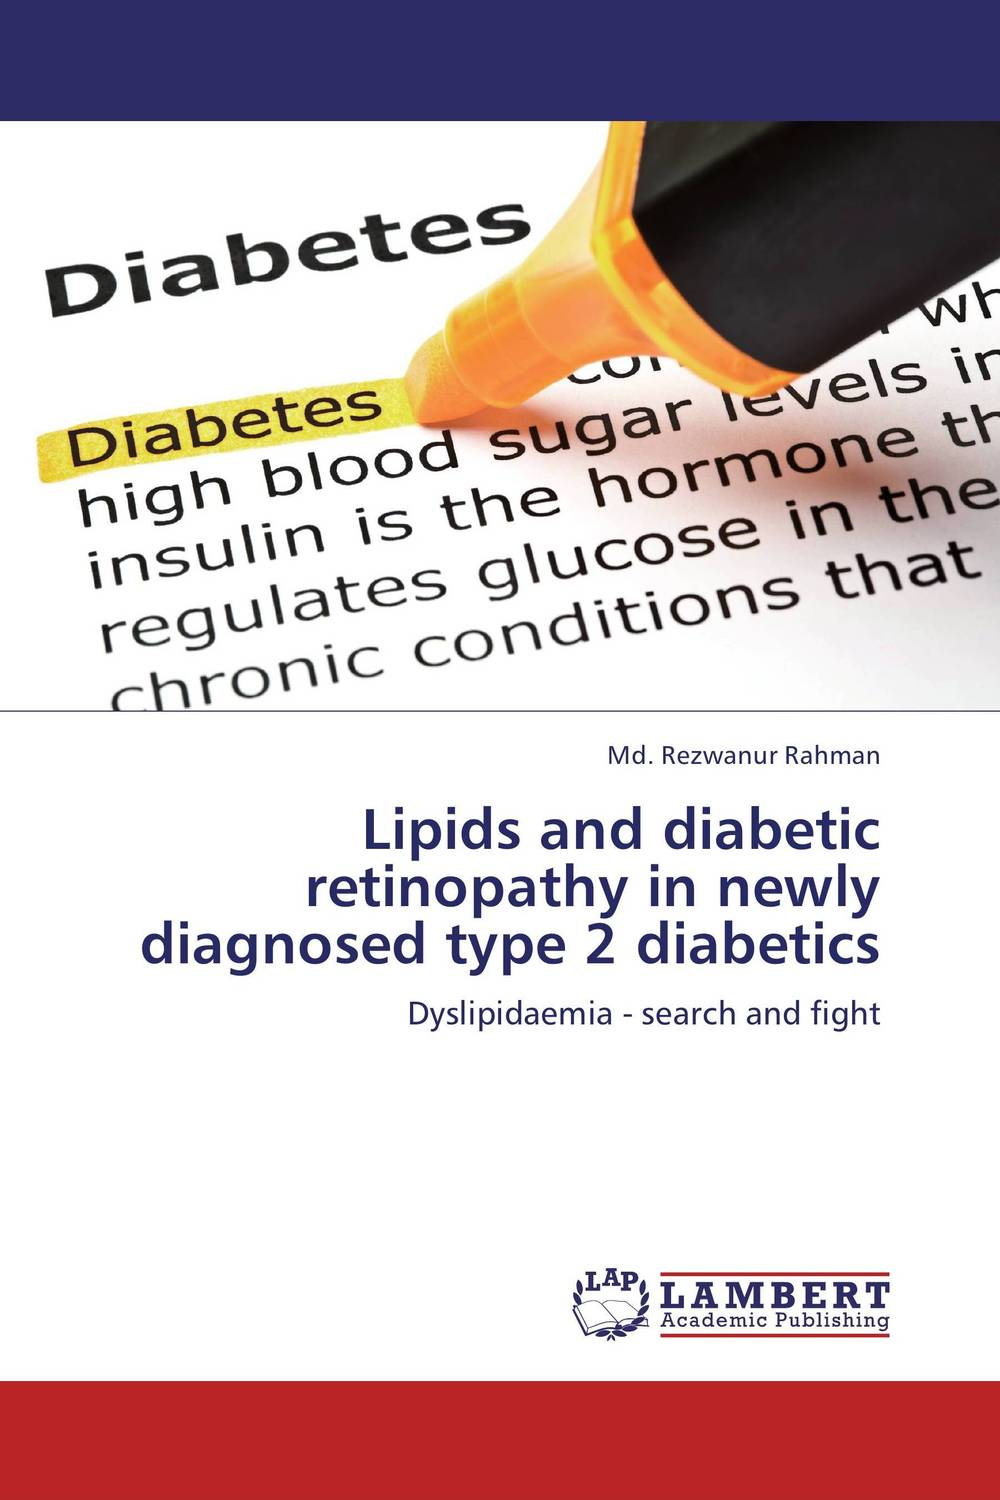 Lipids and diabetic retinopathy in newly diagnosed type 2 diabetics sharad leve rakesh verma and rakesh kumar dixit role of irbesartan and curcumin in type 2 diabetes mellitus